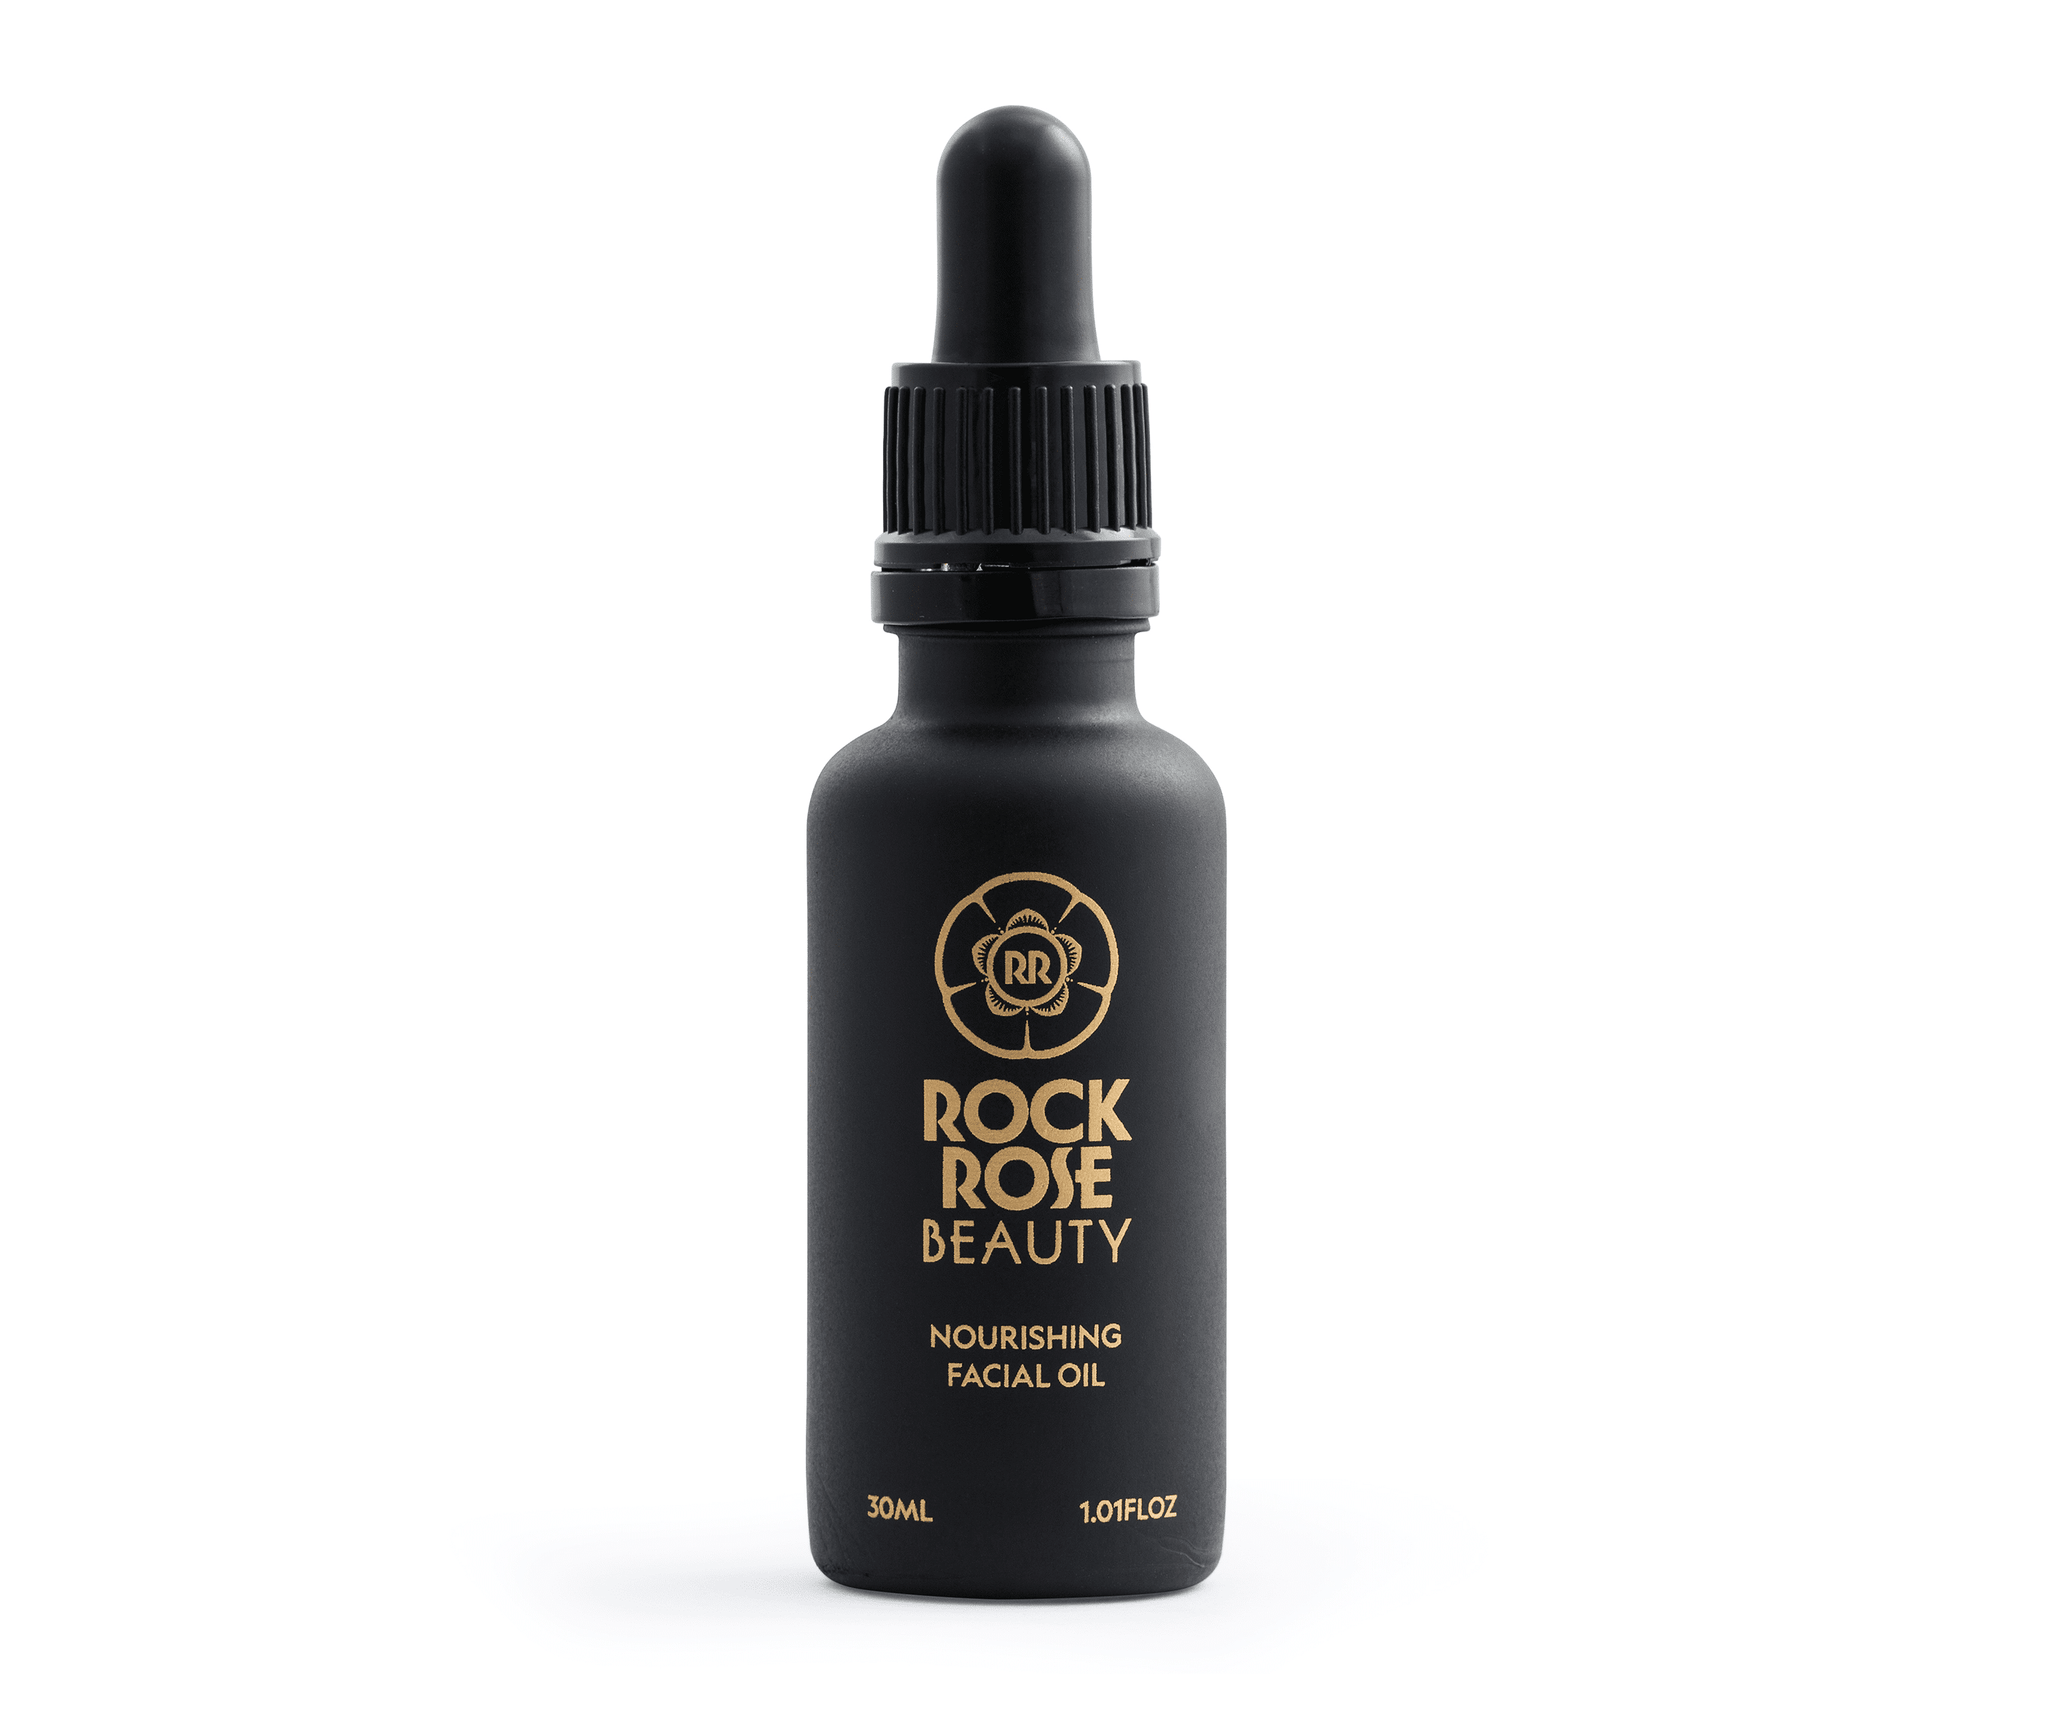 Rock Rose Beauty Nourishing Facial Oil